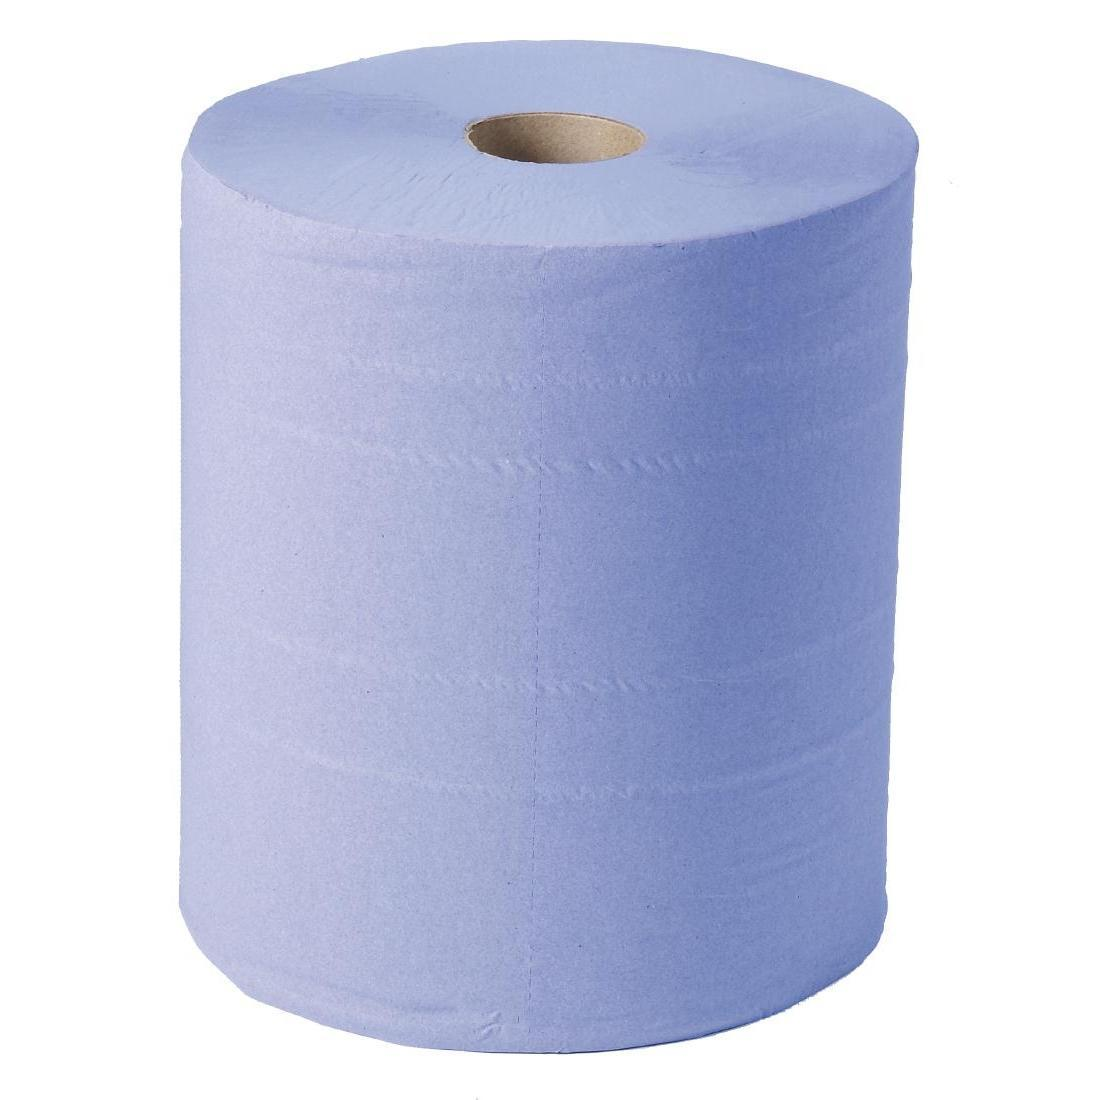 Jantex Blue Maxi Wiper Rolls 2ply 2 Pack